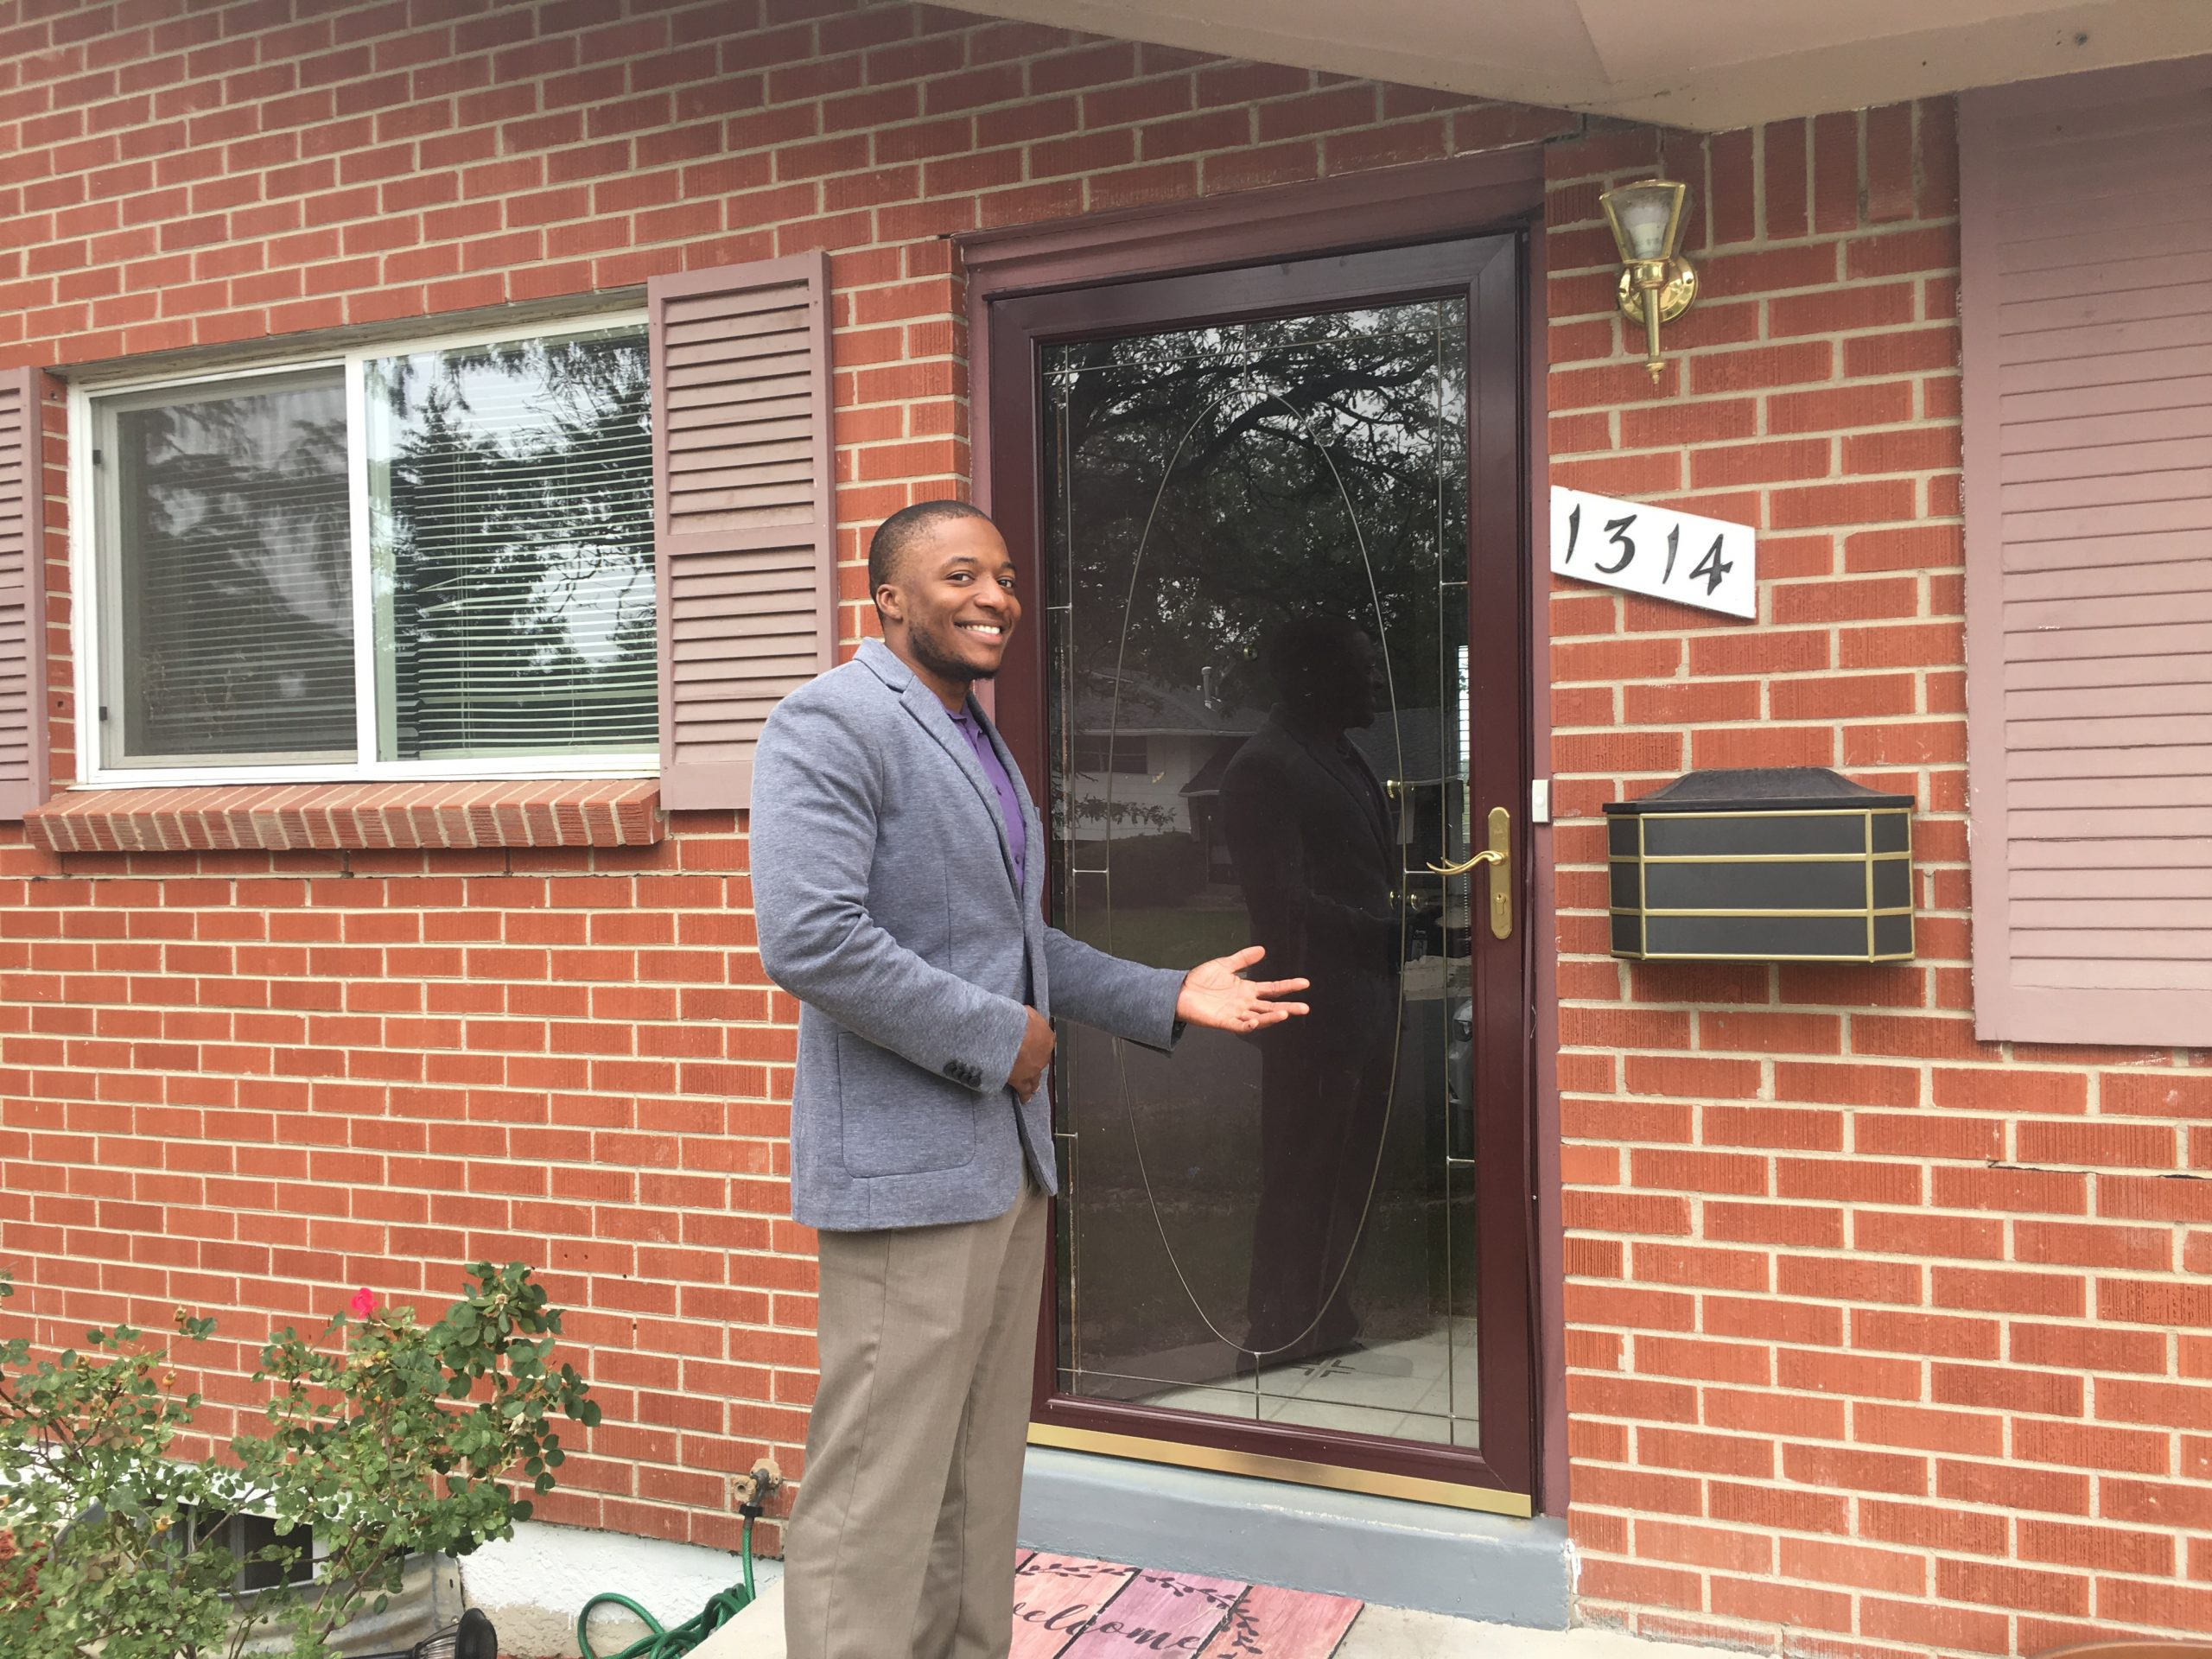 """Tayari Appiah rents out a few homes in Colorado Springs through Airbnb. He says he aims to create positive experiences for visitors, and to help them """"feel like a local"""" when they come to town. He opposes the city's proposed short term rental ordinance."""